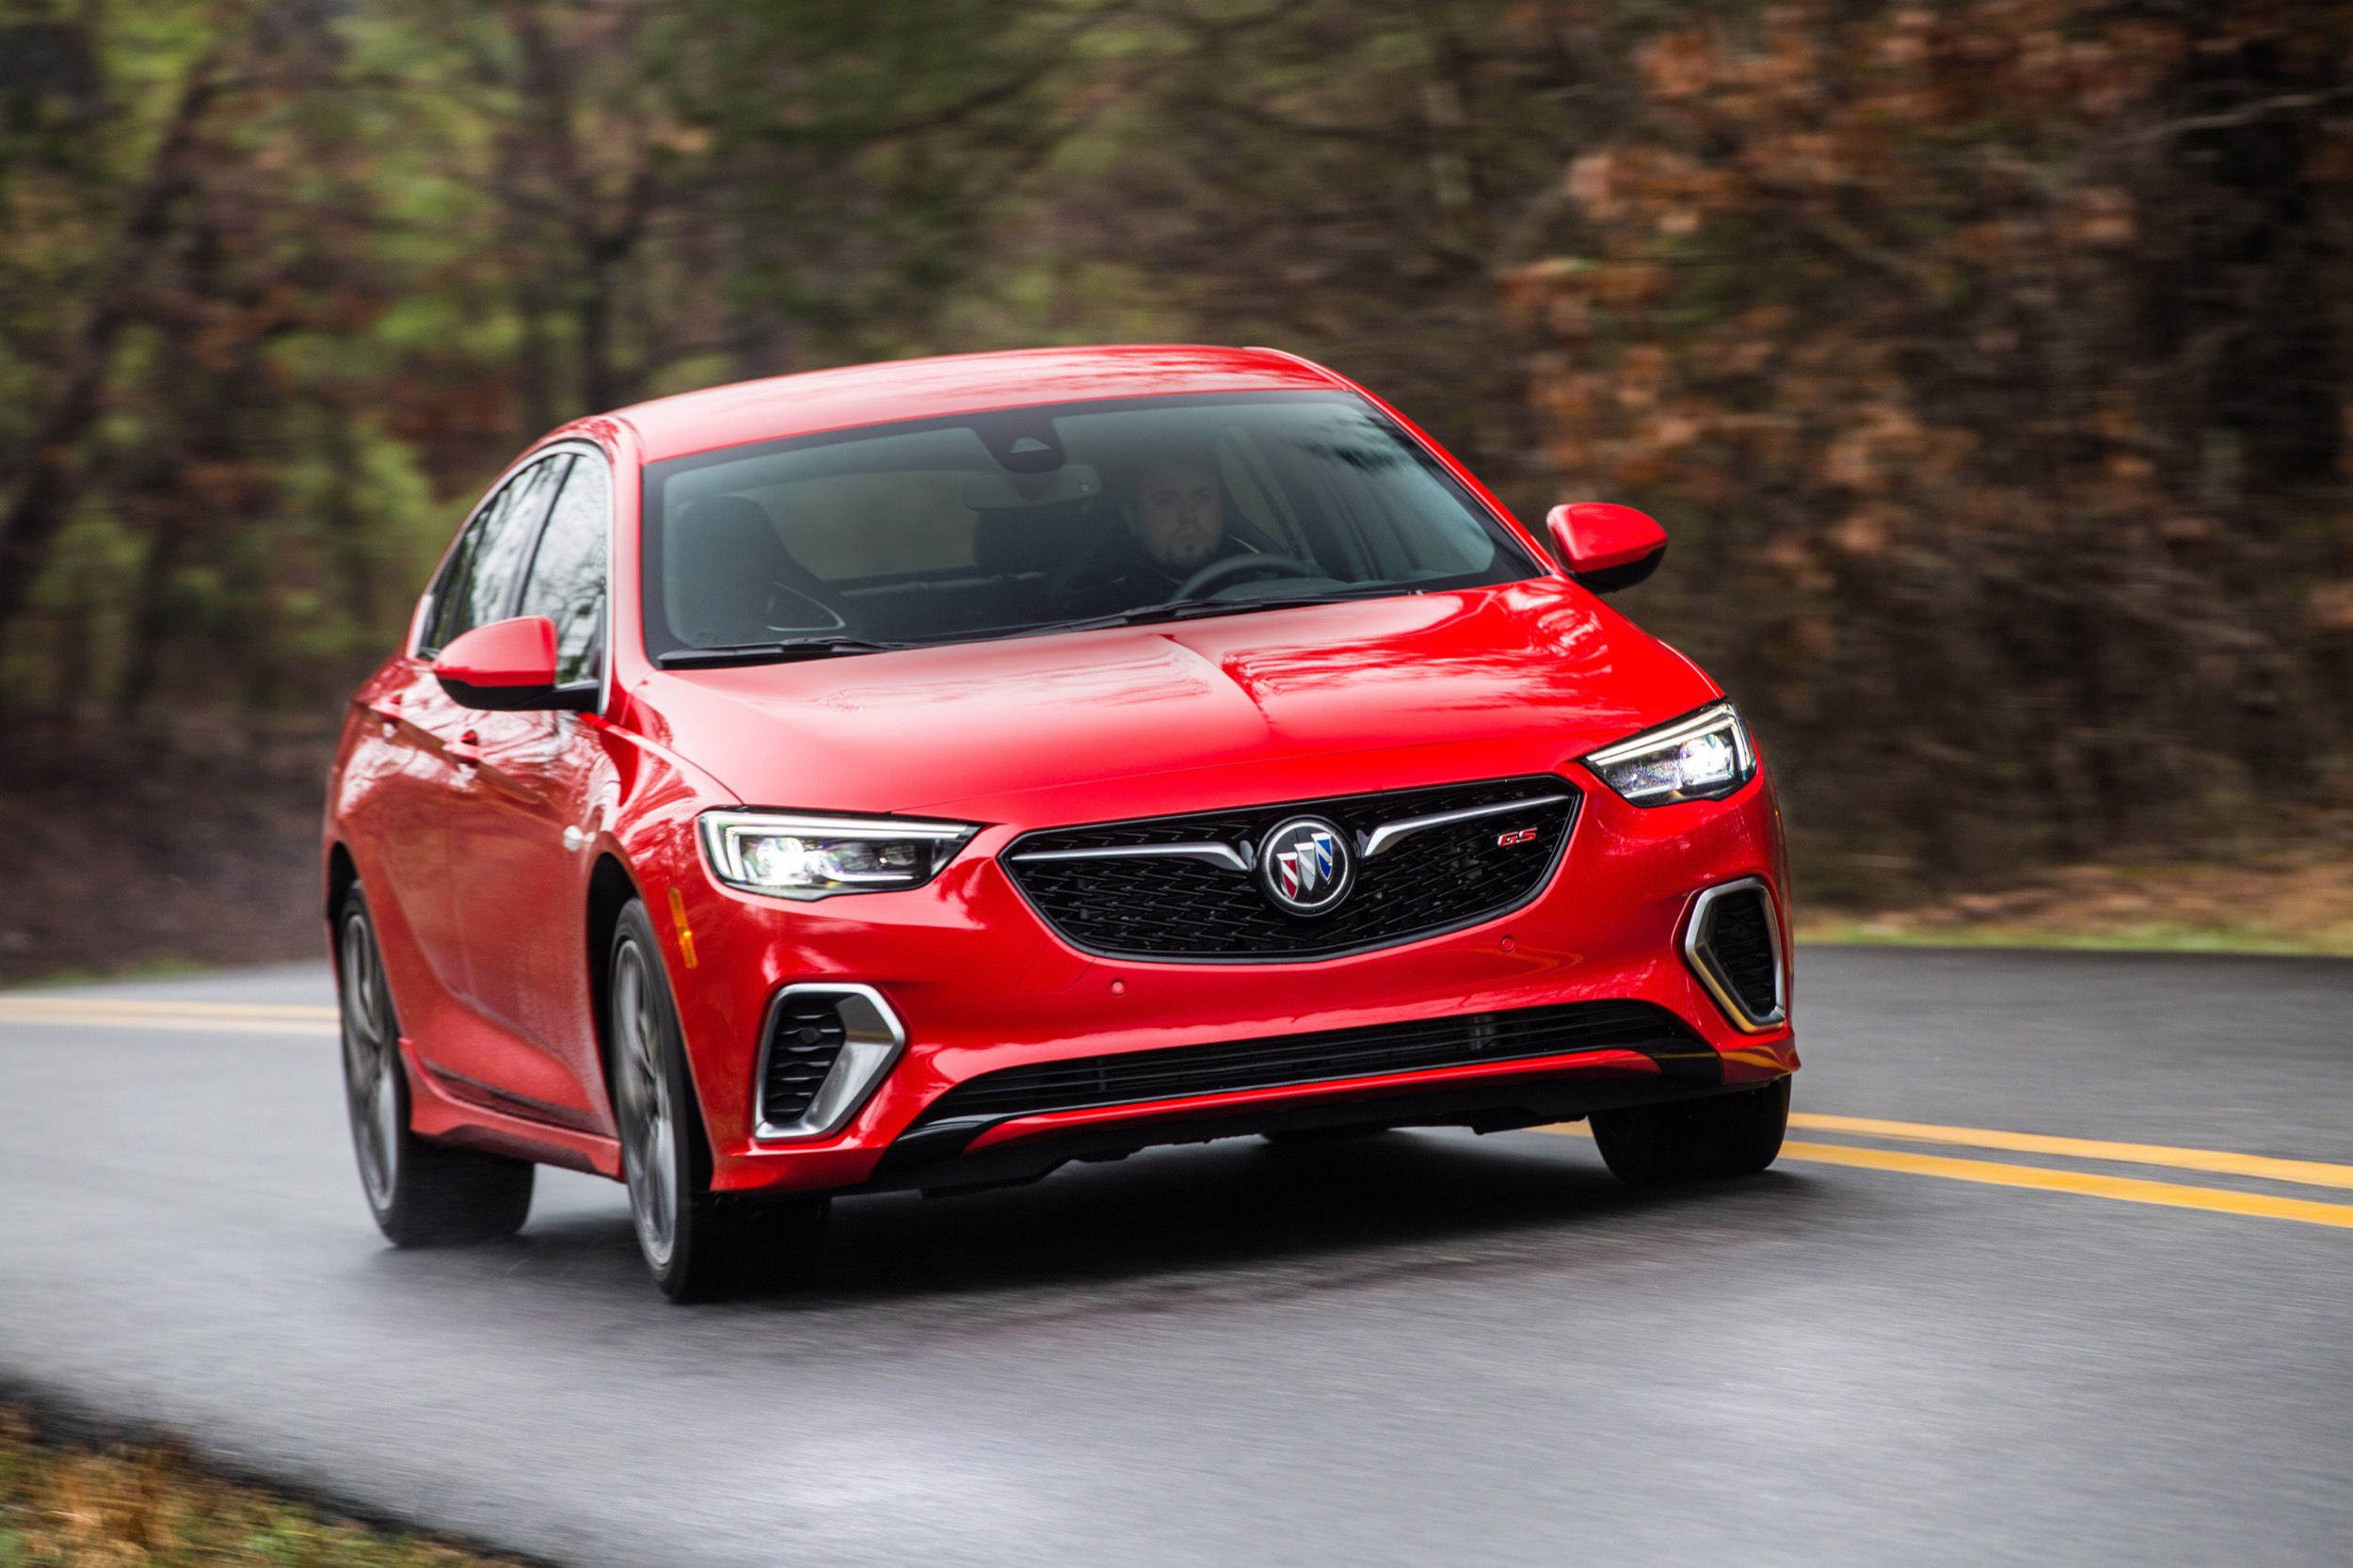 We Have Some Beef With This 2018 Buick Regal Gs Review | Gm New 2022 Buick Regal Gs Price, Review, 0-60